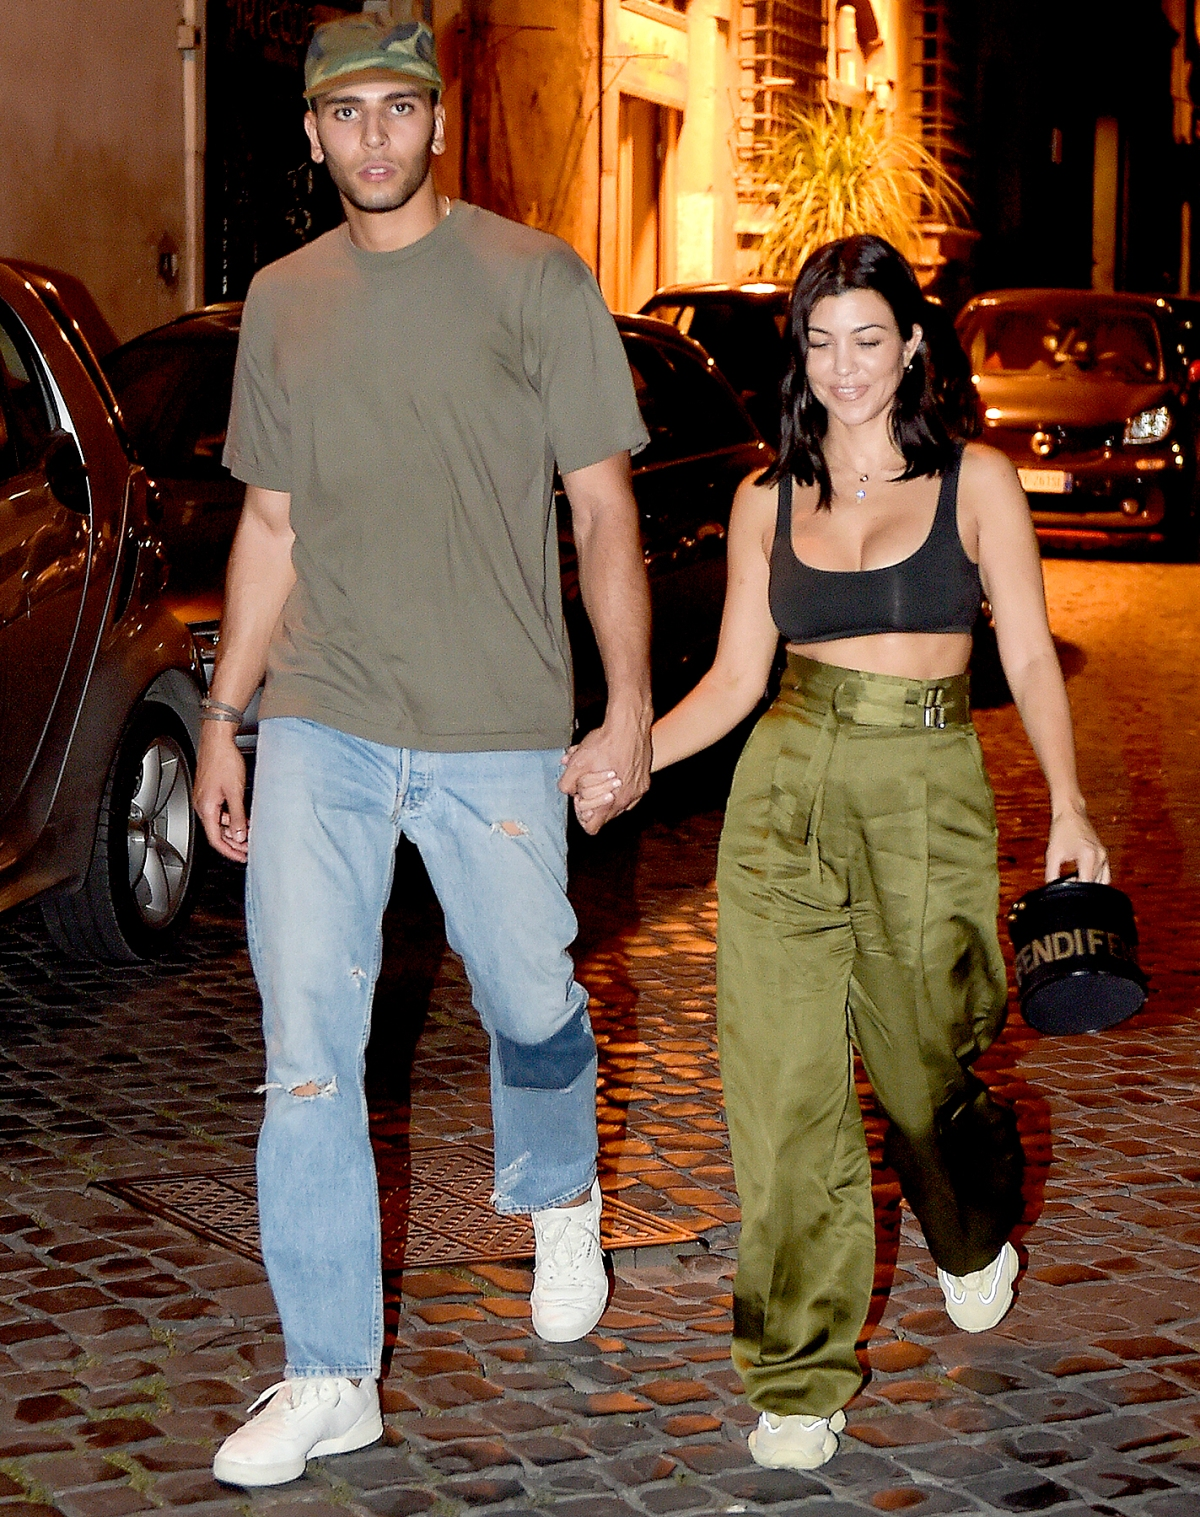 is kourtney k dating anyone dating from a mans perspective